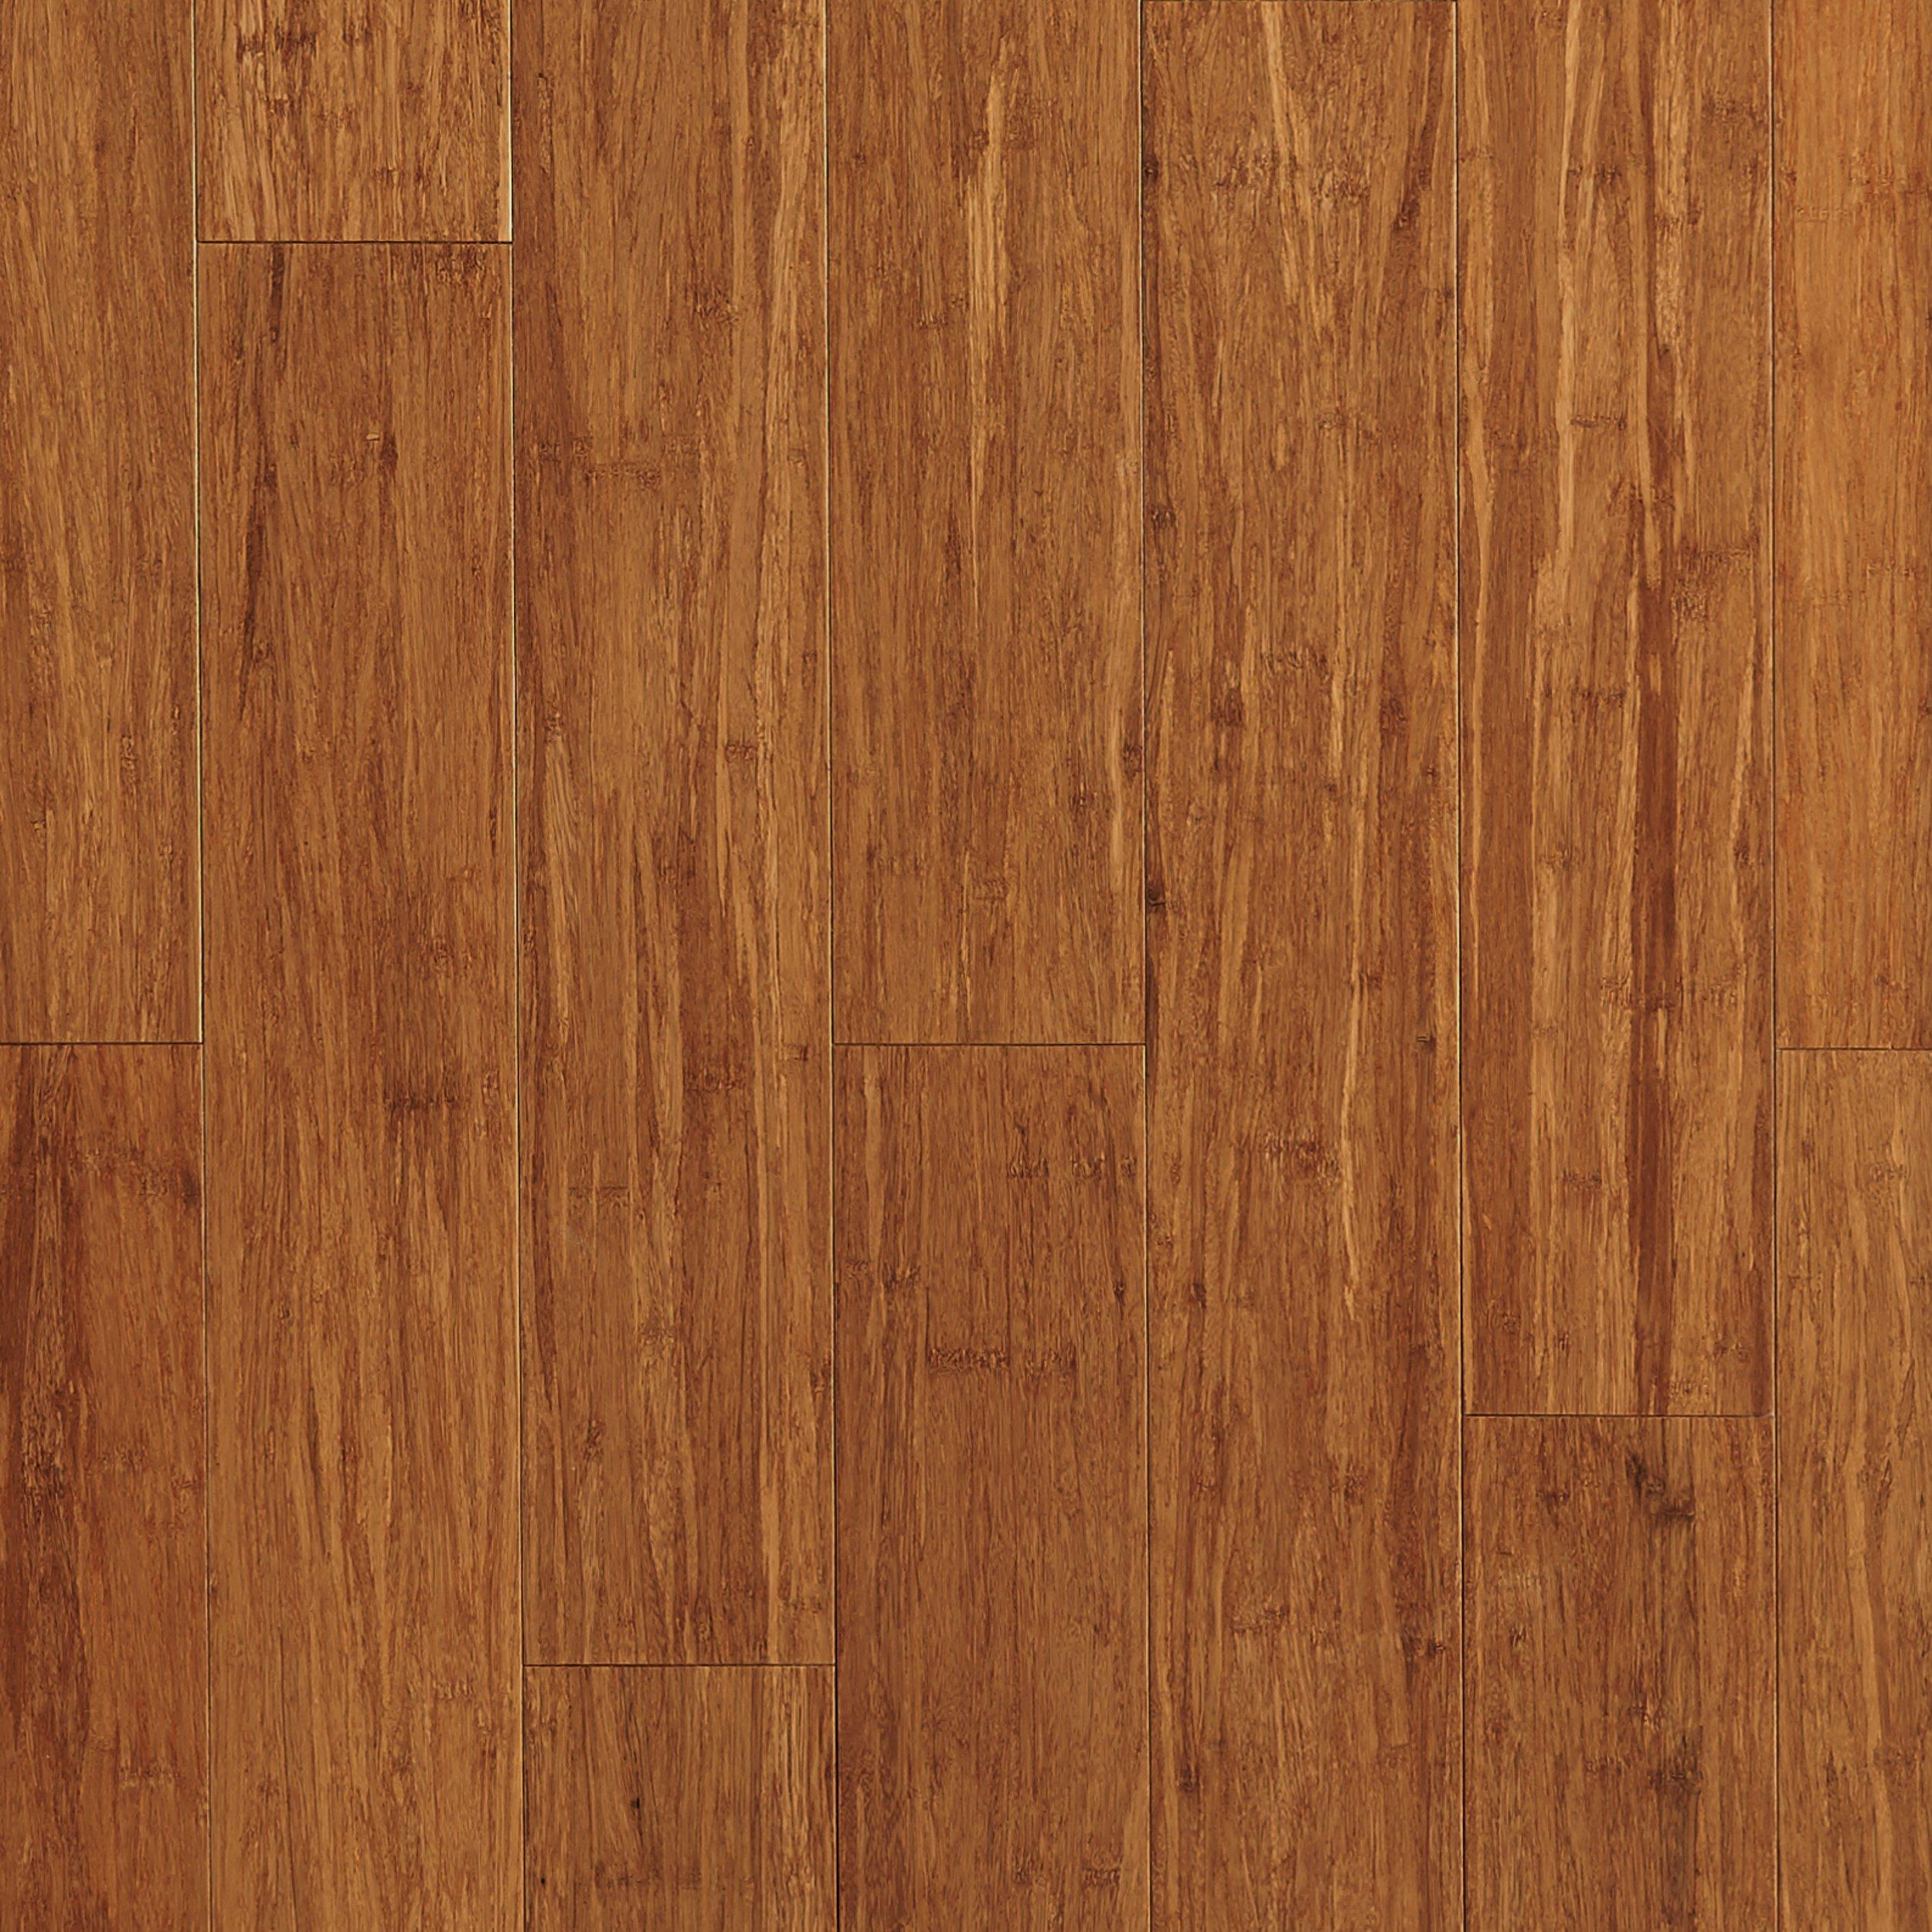 ecoforest mocha locking solid stranded bamboo 12in x 5in floor and decor - Bamboo Laminate Flooring